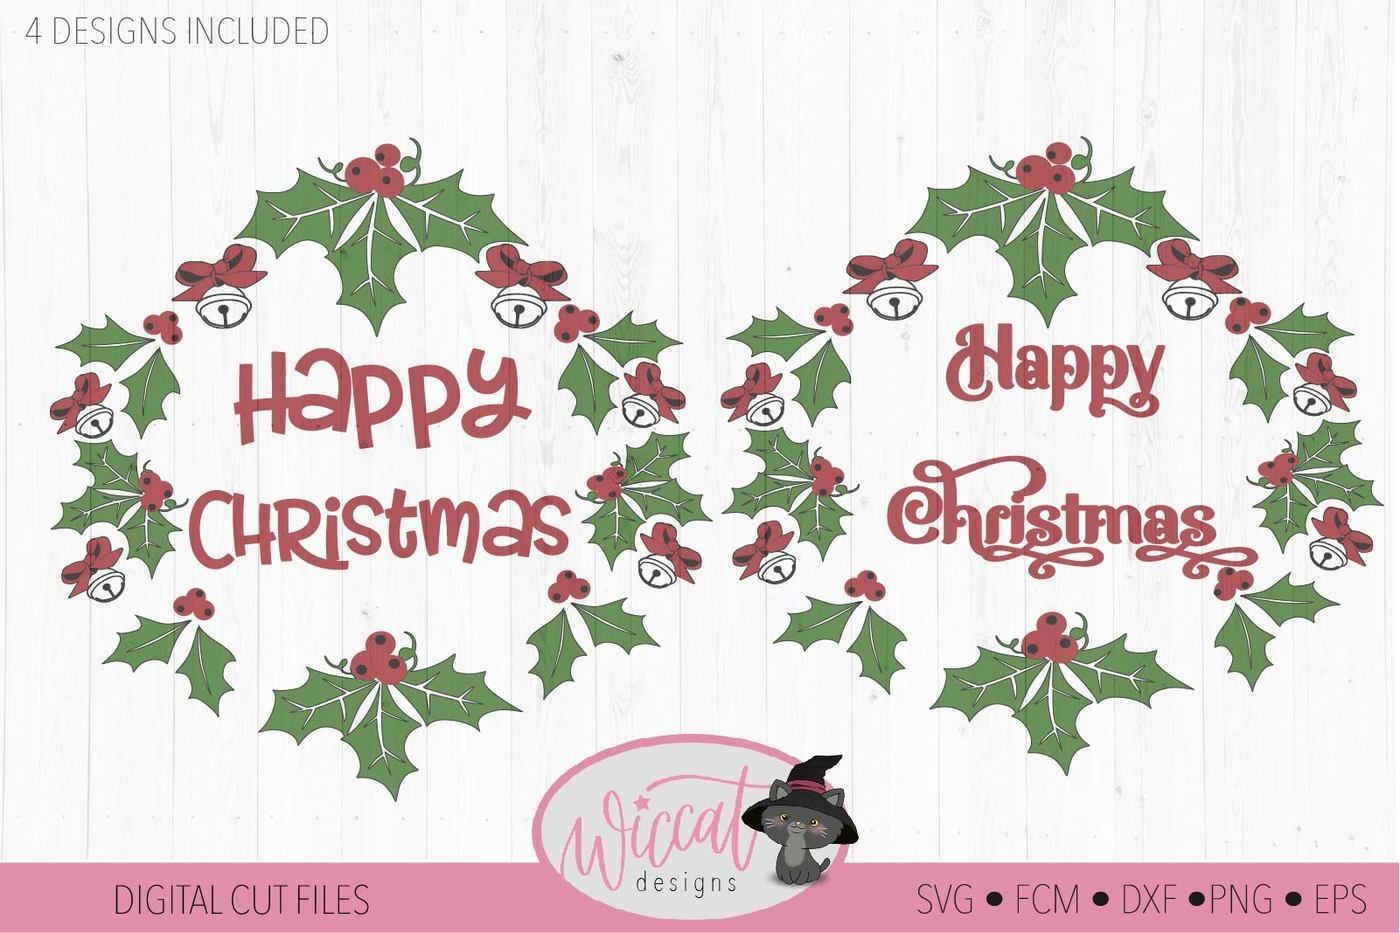 Merry Christmas Wreath Svg Branch Svg Wreath Sv By Wiccatdesigns